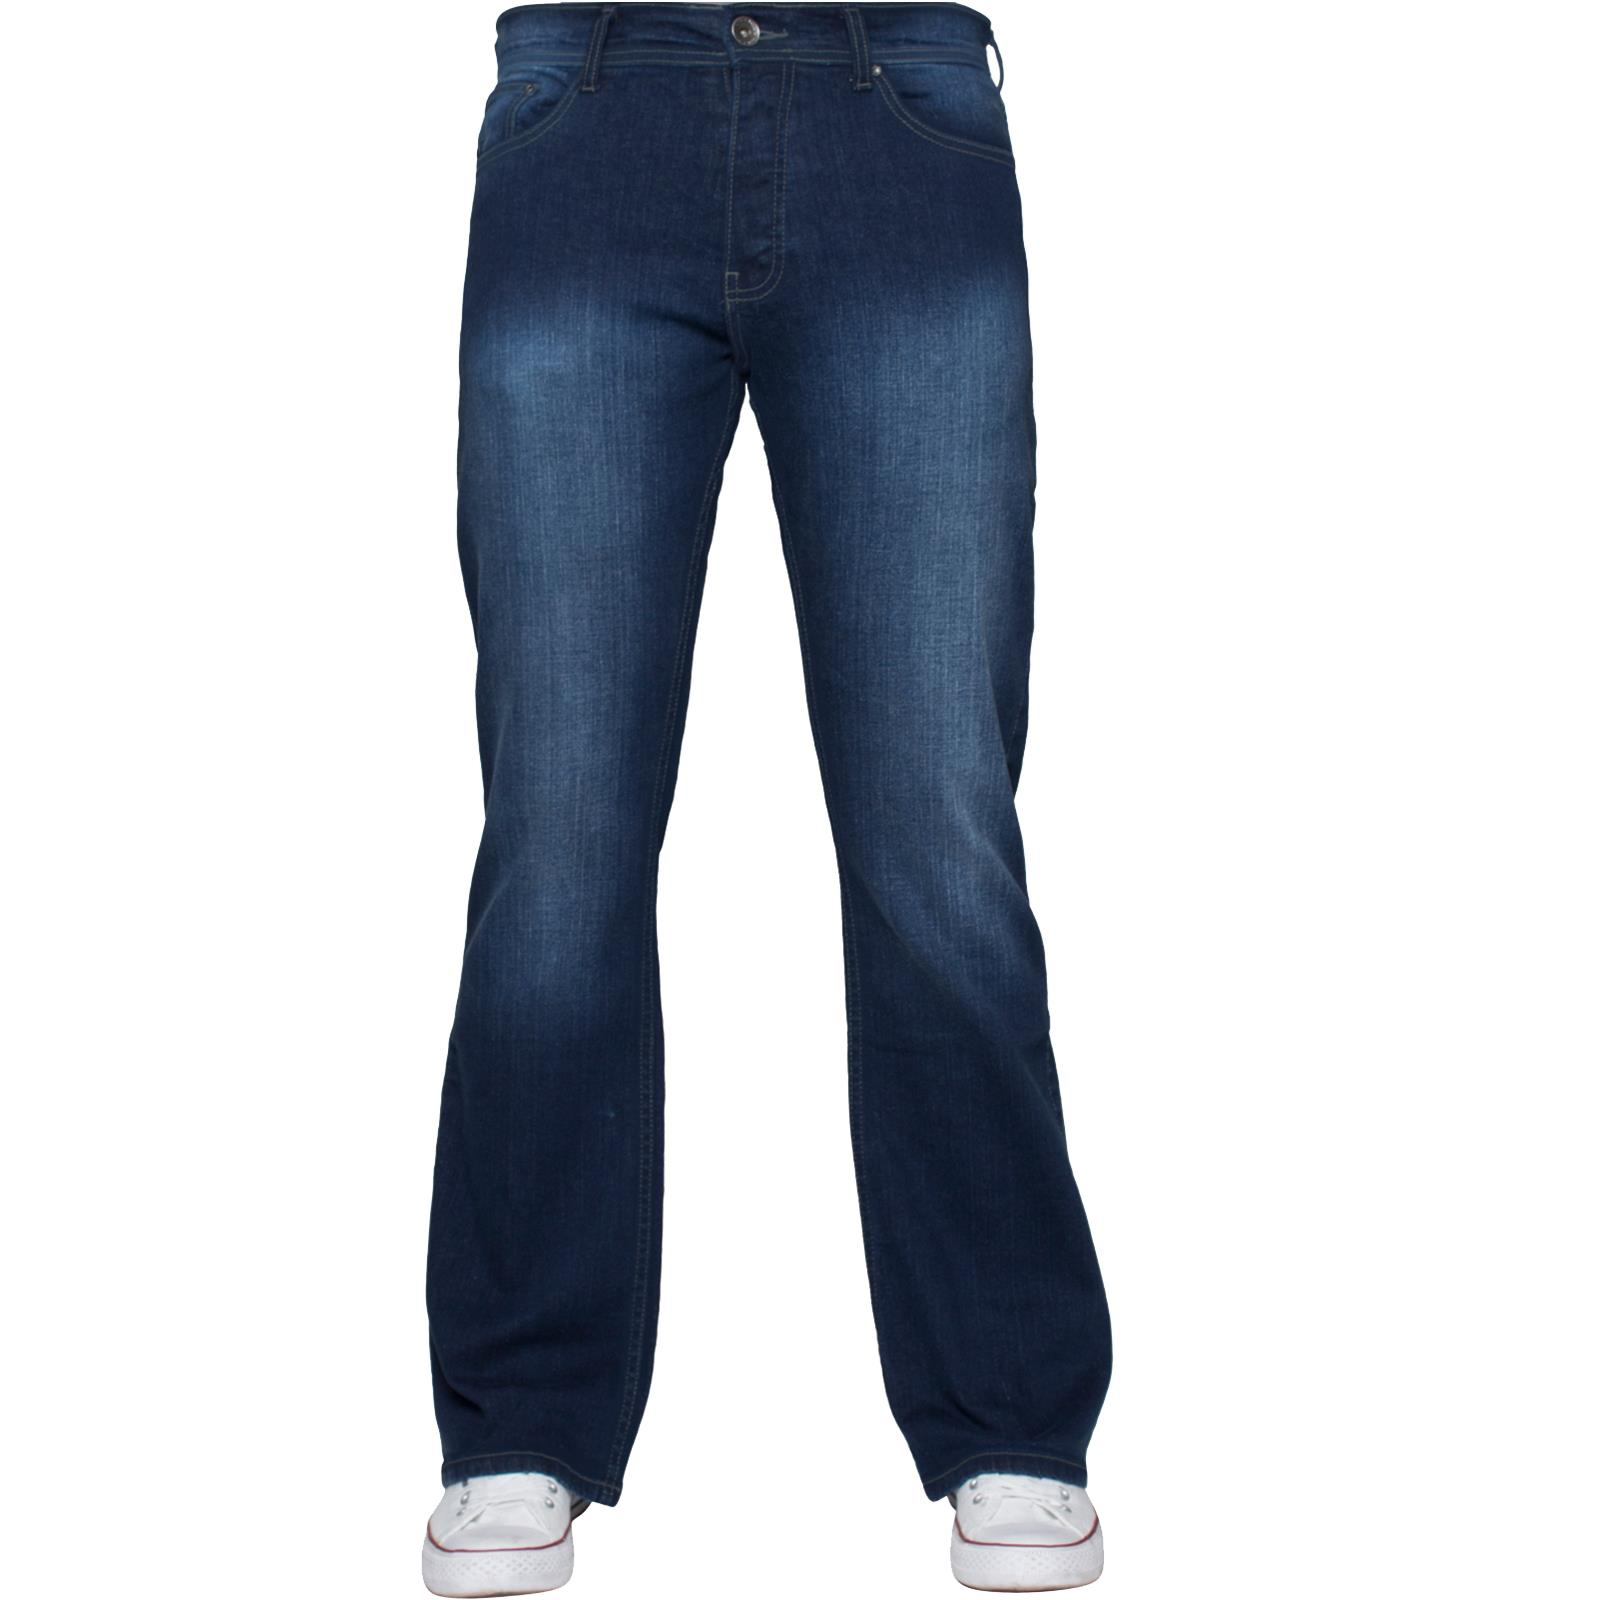 Enzo-Mens-Jeans-Big-Tall-Leg-King-Size-Denim-Pants-Chino-Trousers-Waist-44-034-60-034 miniature 63